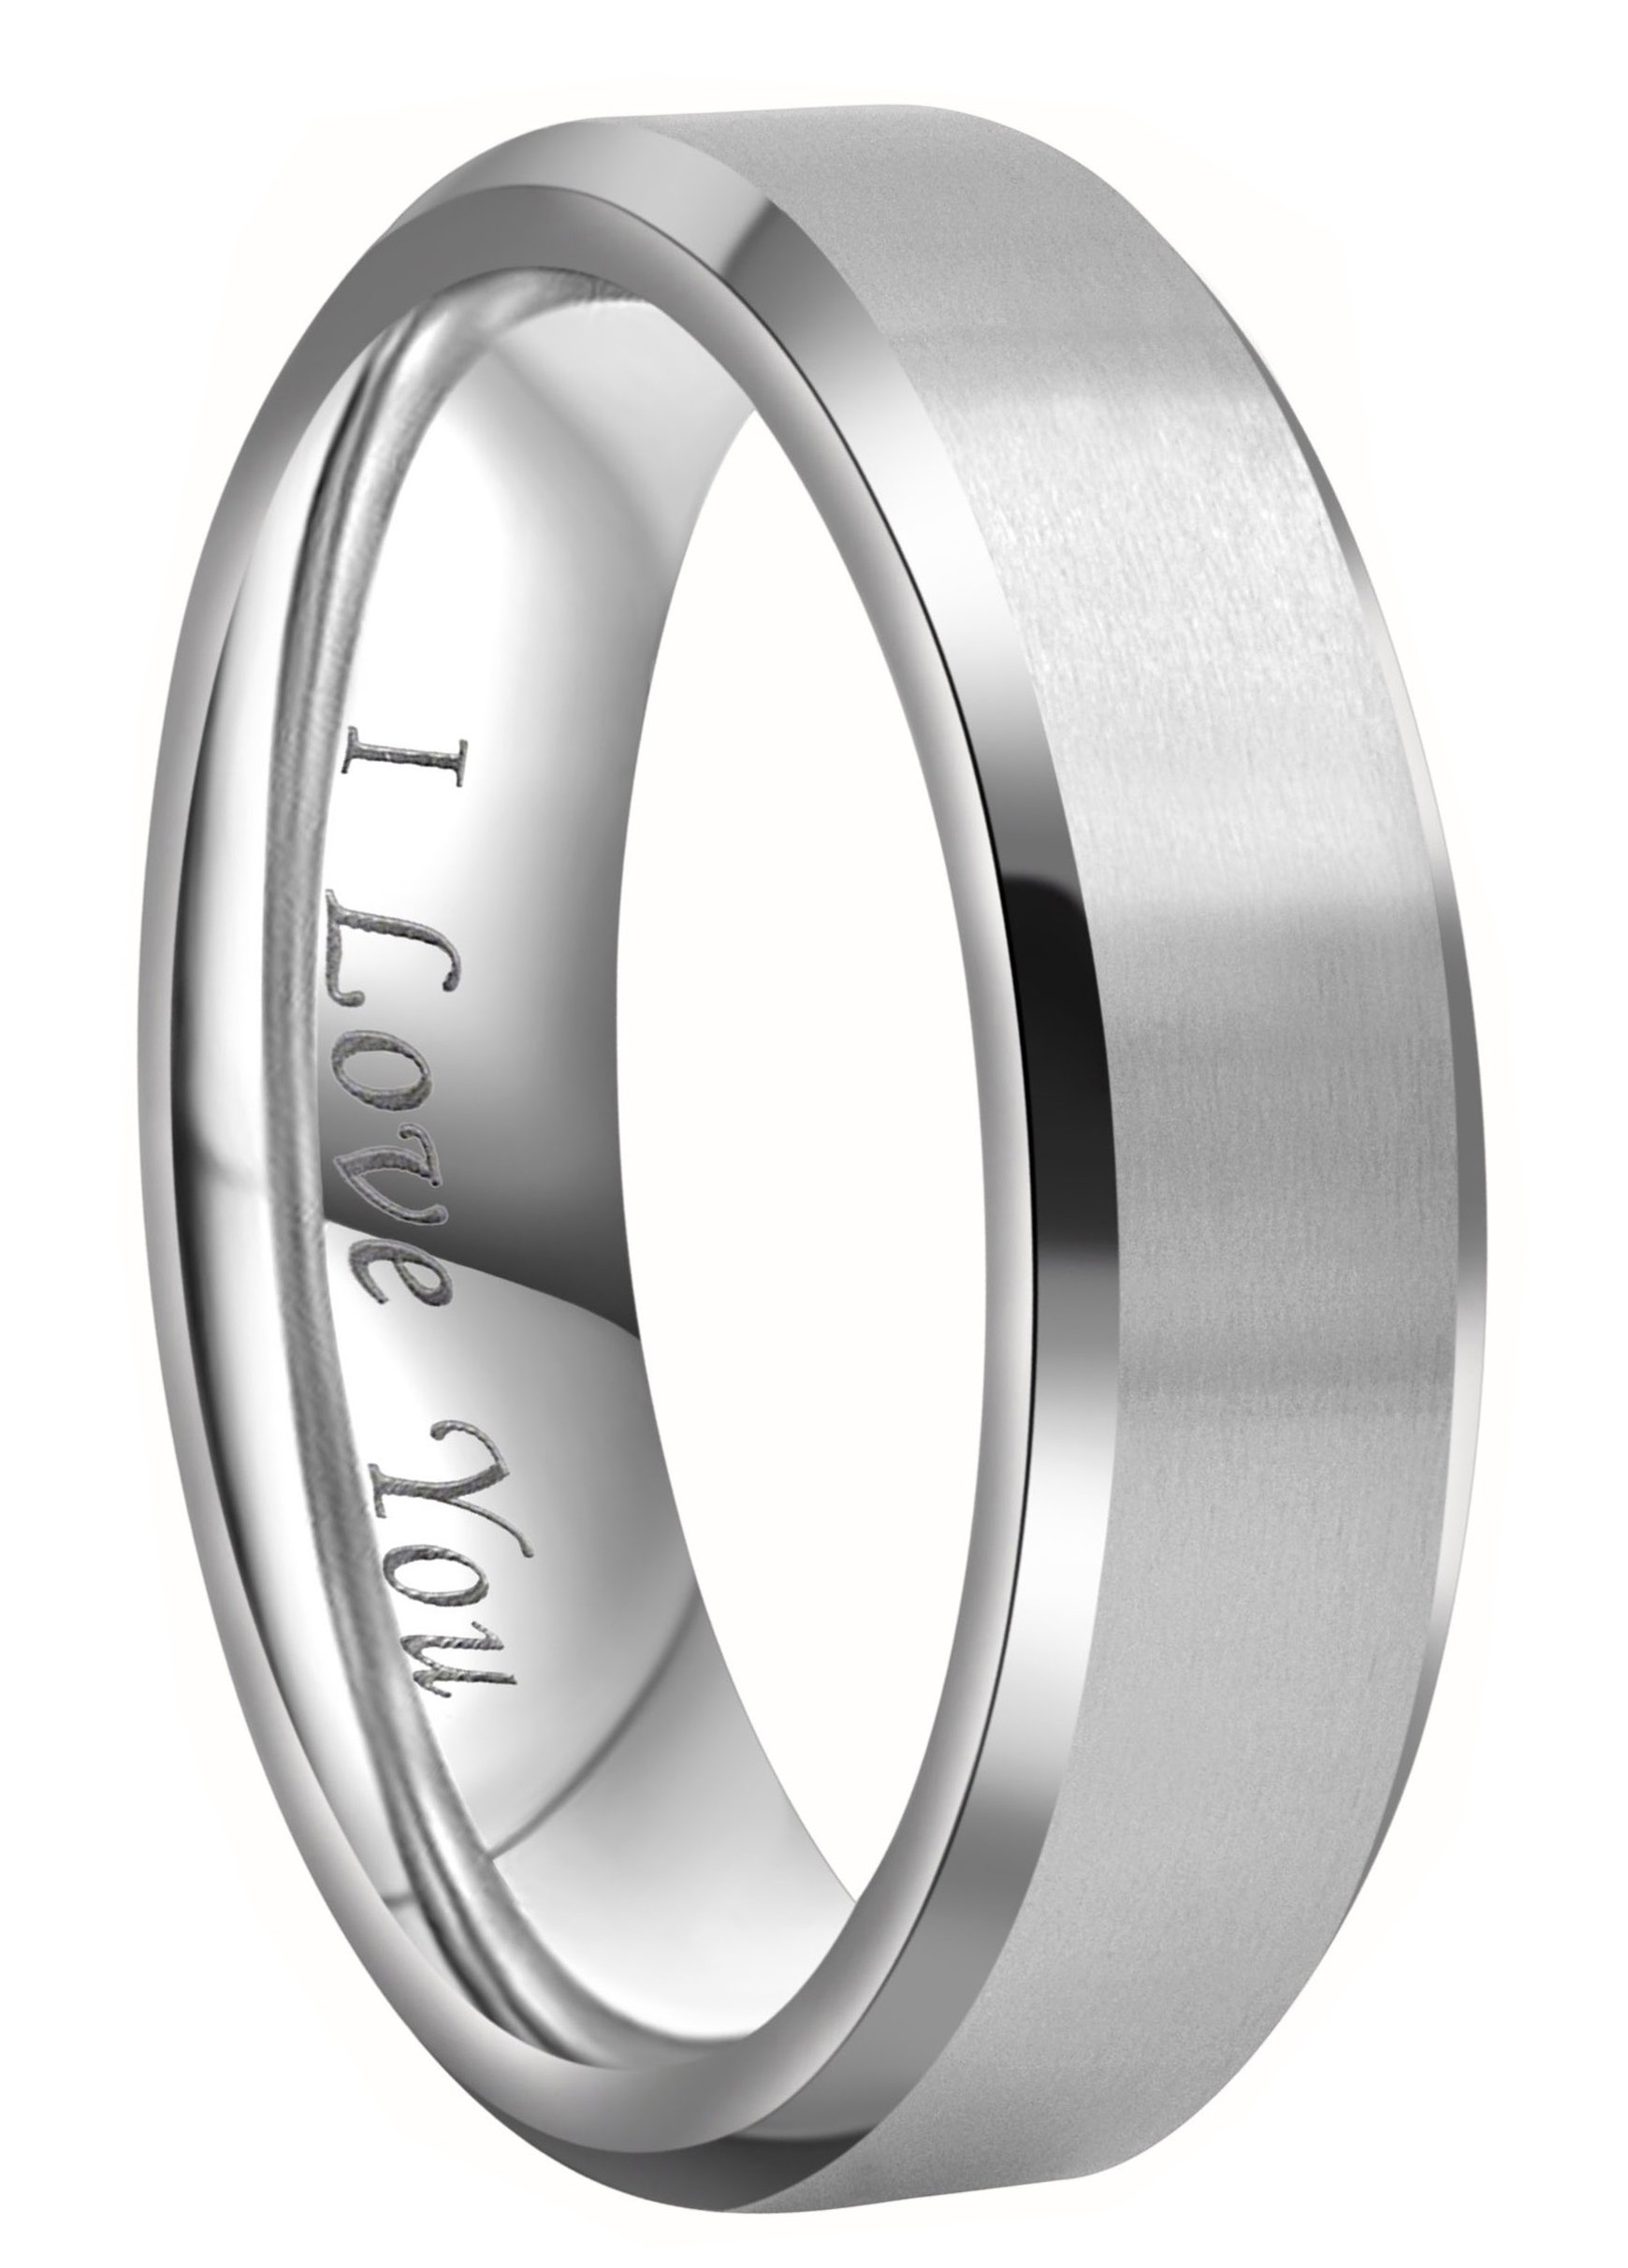 Crownal 4mm 6mm 8mm Titanium Wedding Couple Bands Rings Men Women Matte Brush Center Beveled Edges Engraved ''I Love You'' Comfort Fit Size 4 To 16 (6mm,11.5)